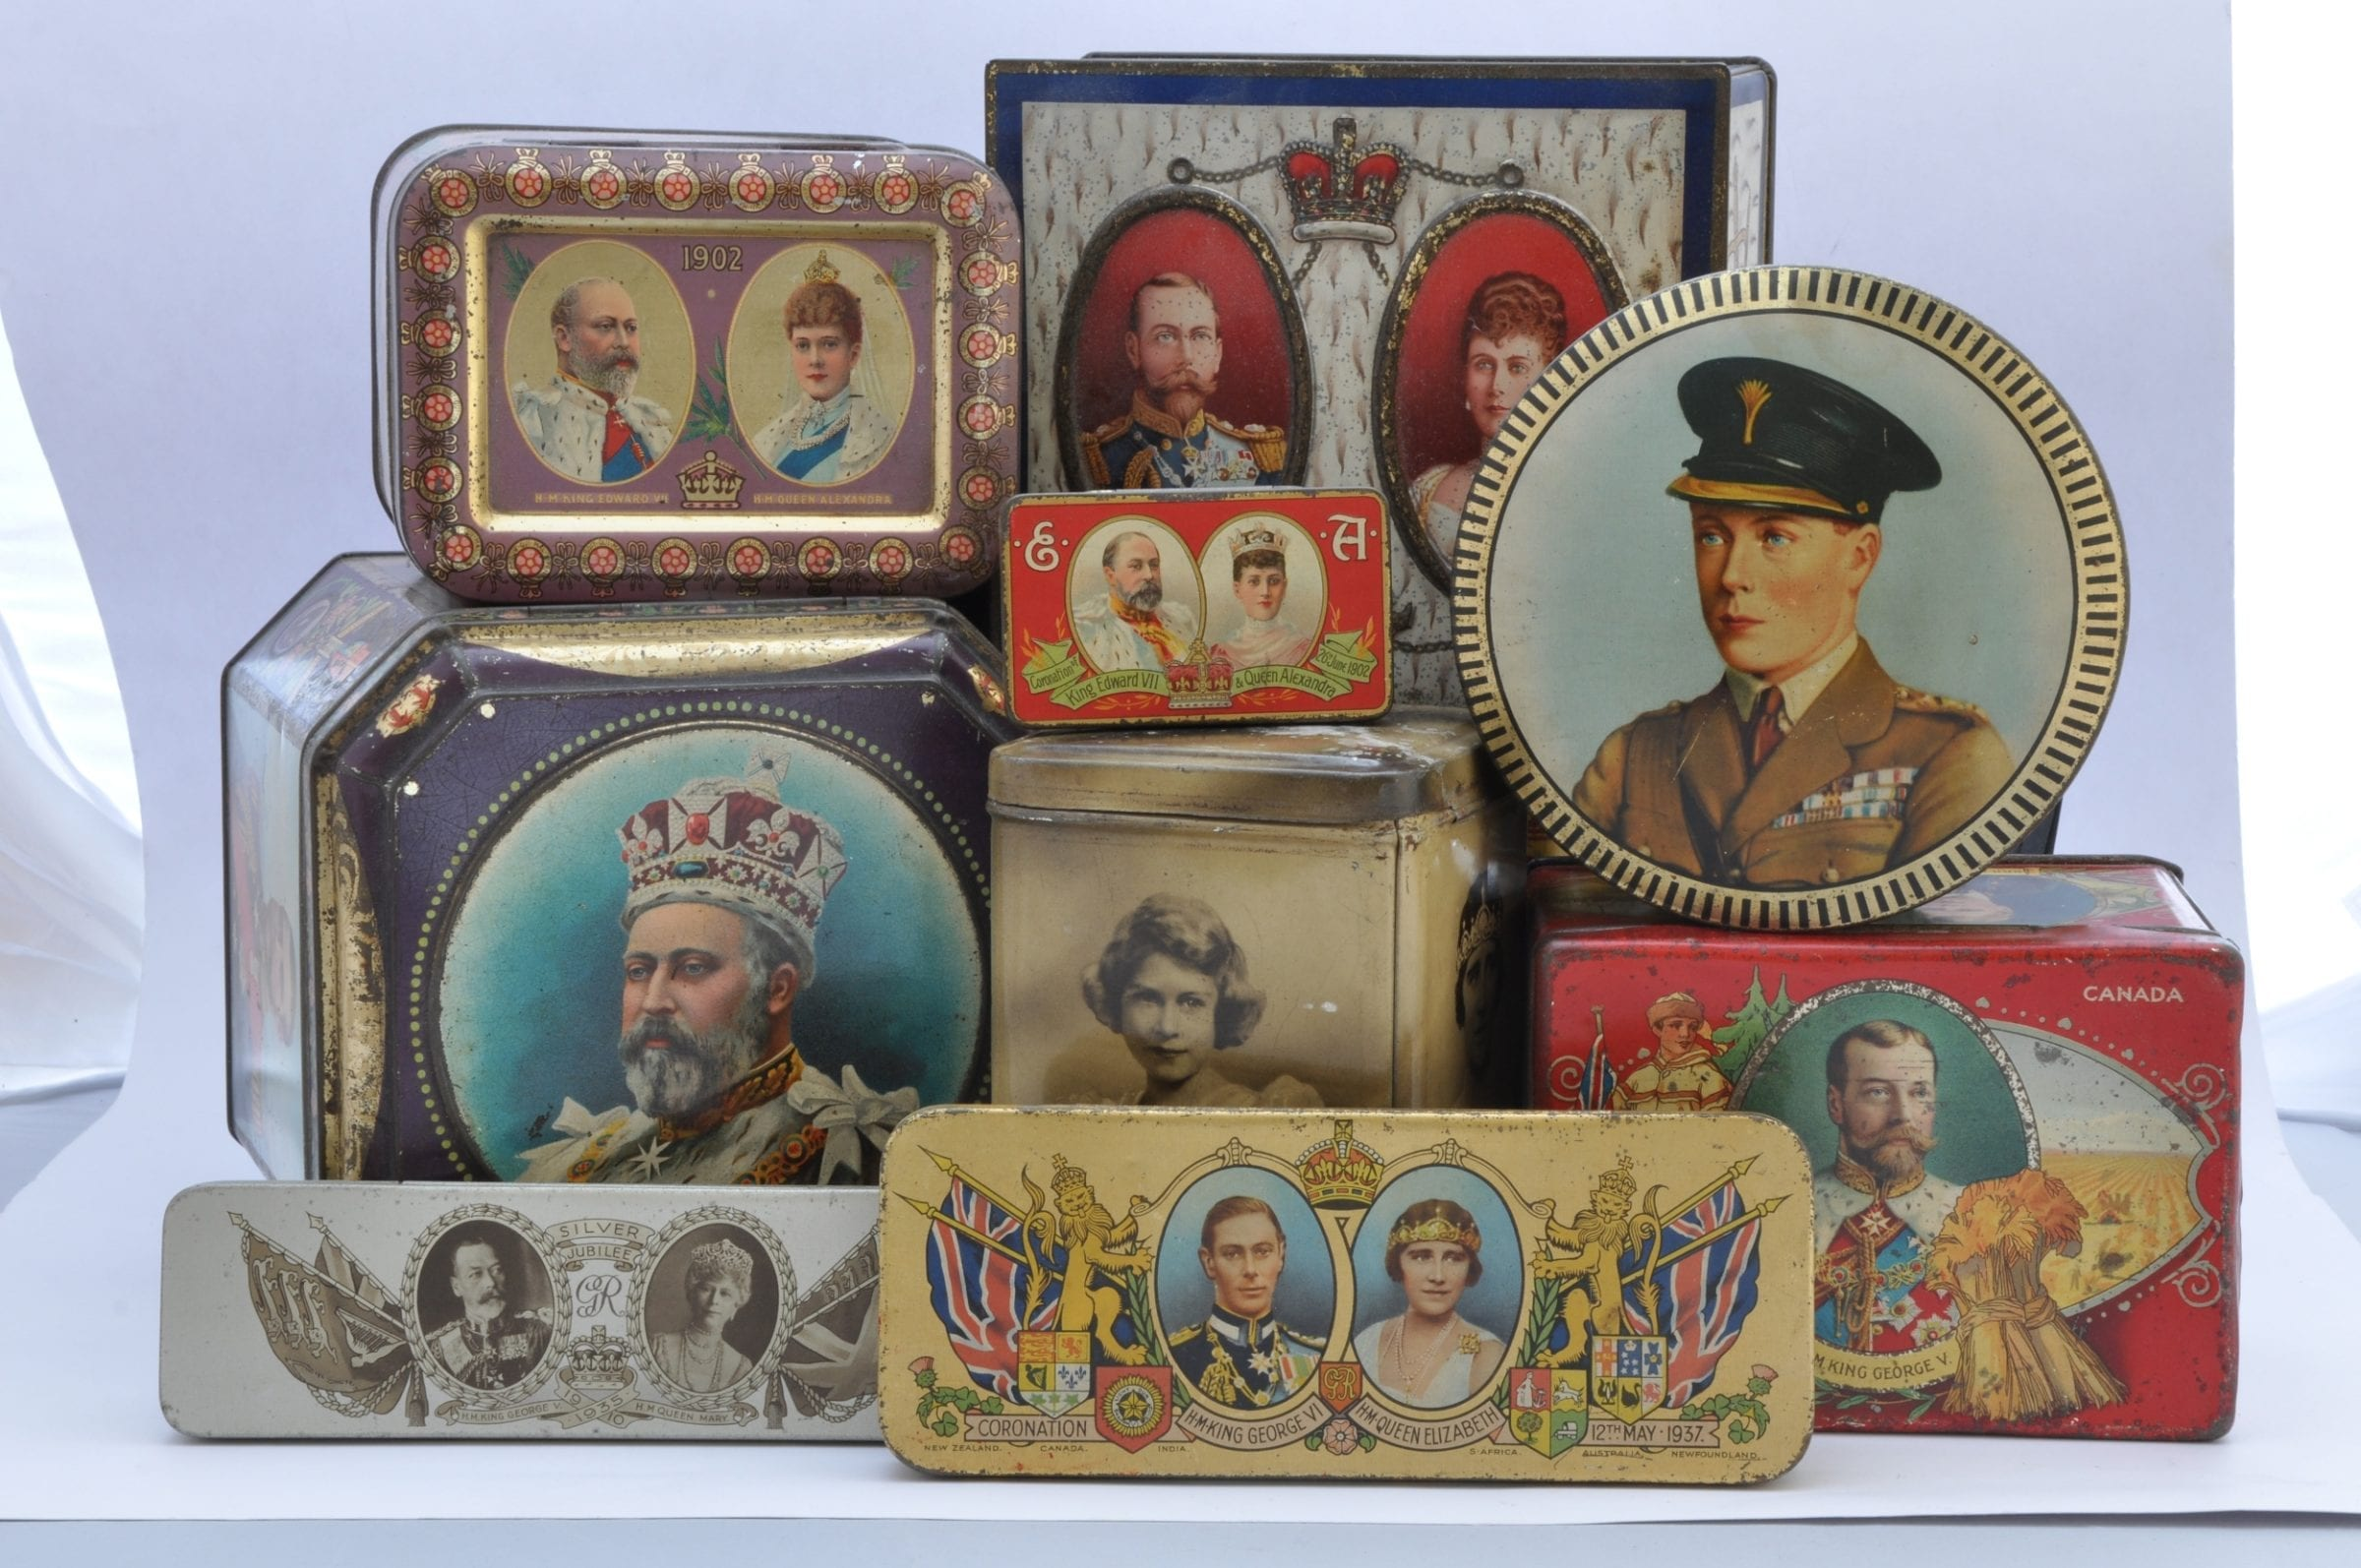 Decorative souvenir tins for royal occasions - would have contained chocolate,tea,mustard